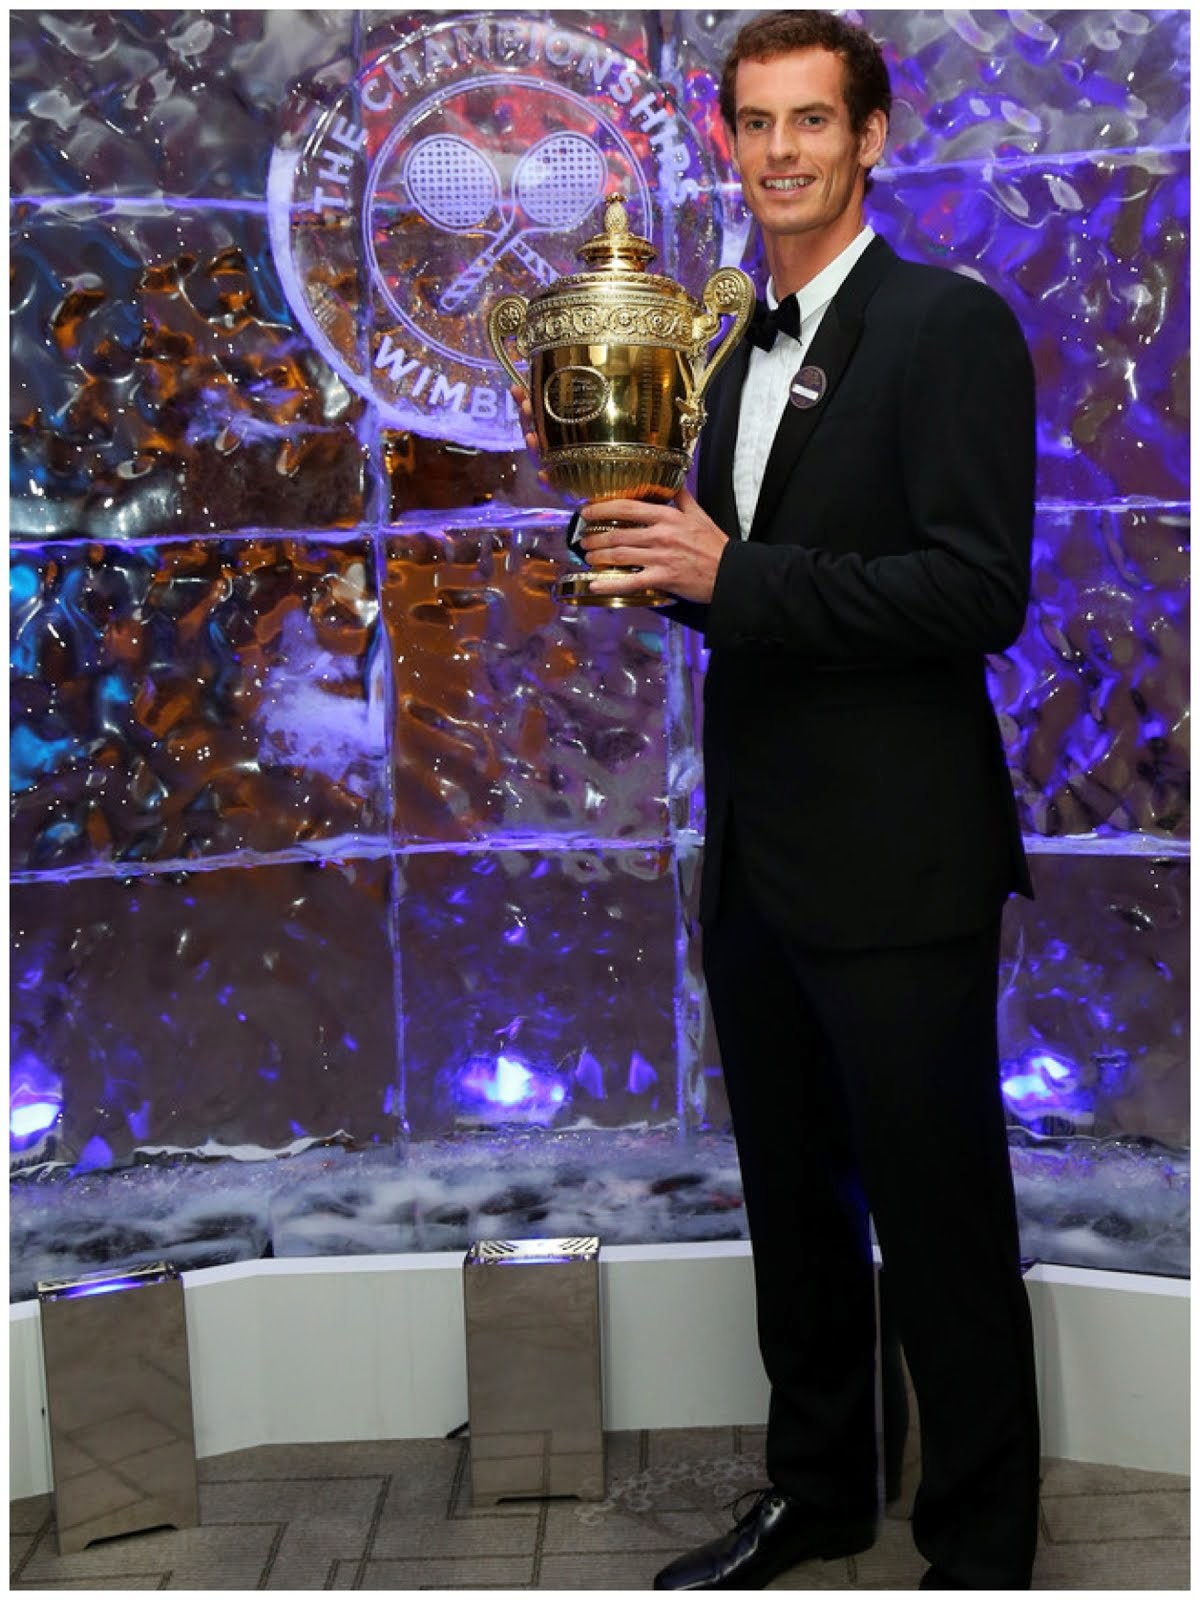 00O00 menswear blog: Andy Murray in Burberry at Champions Dinner 2013